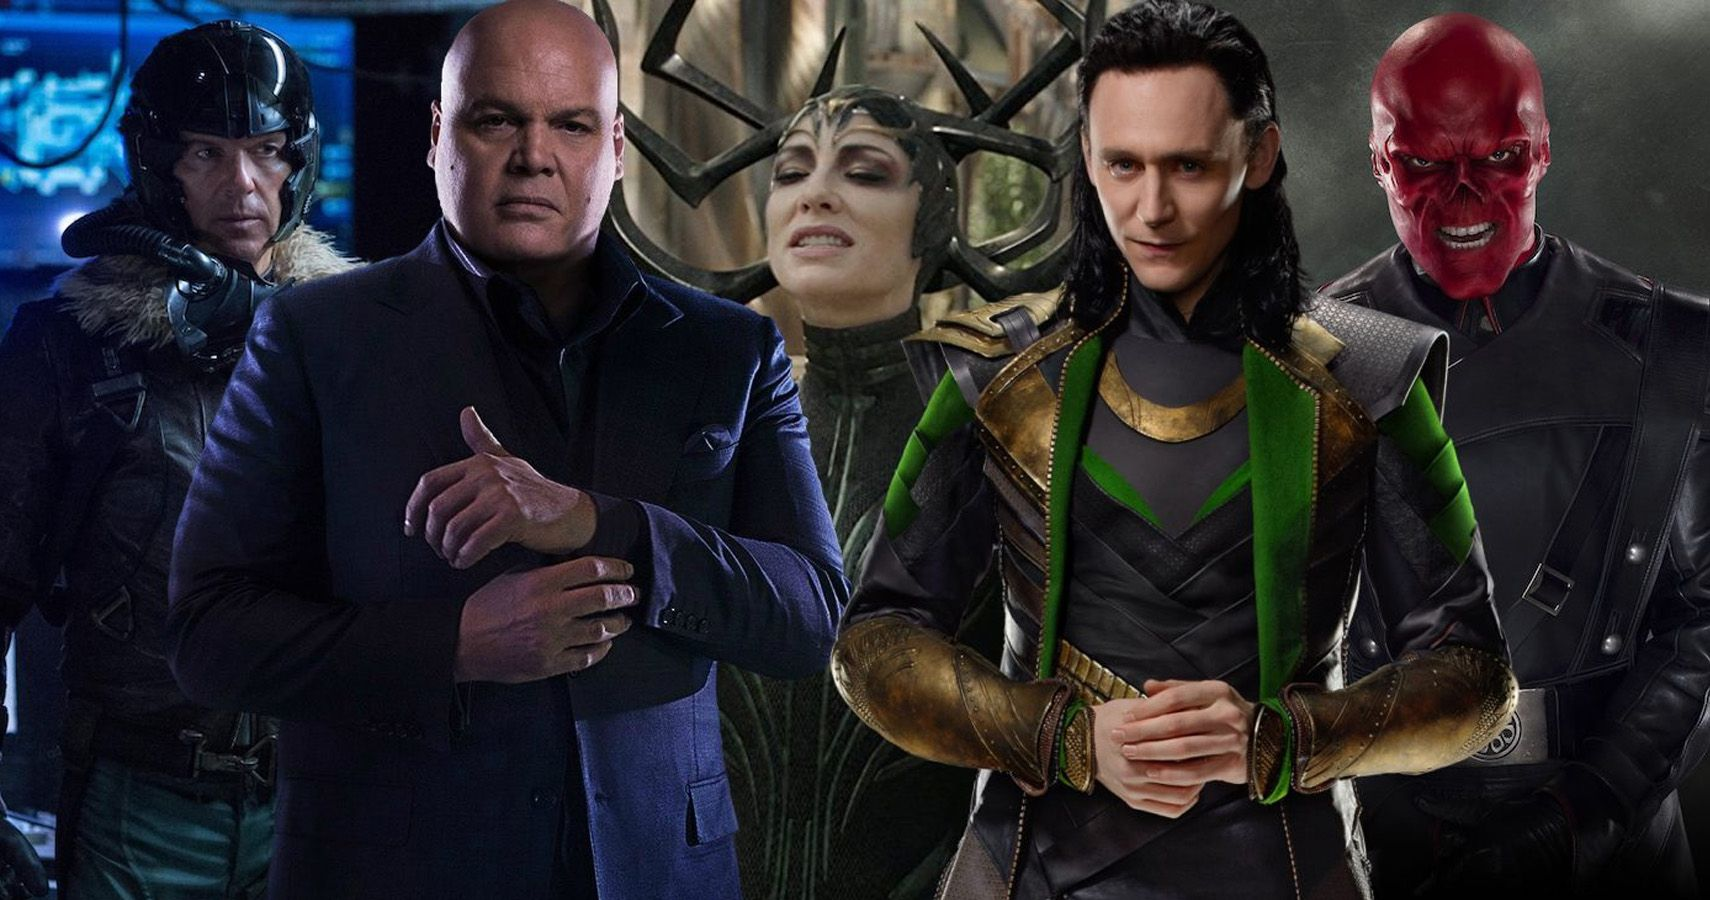 Avengers: 18 Villains Rumored To Appear After Endgame (And 7 Who Are Confirmed)